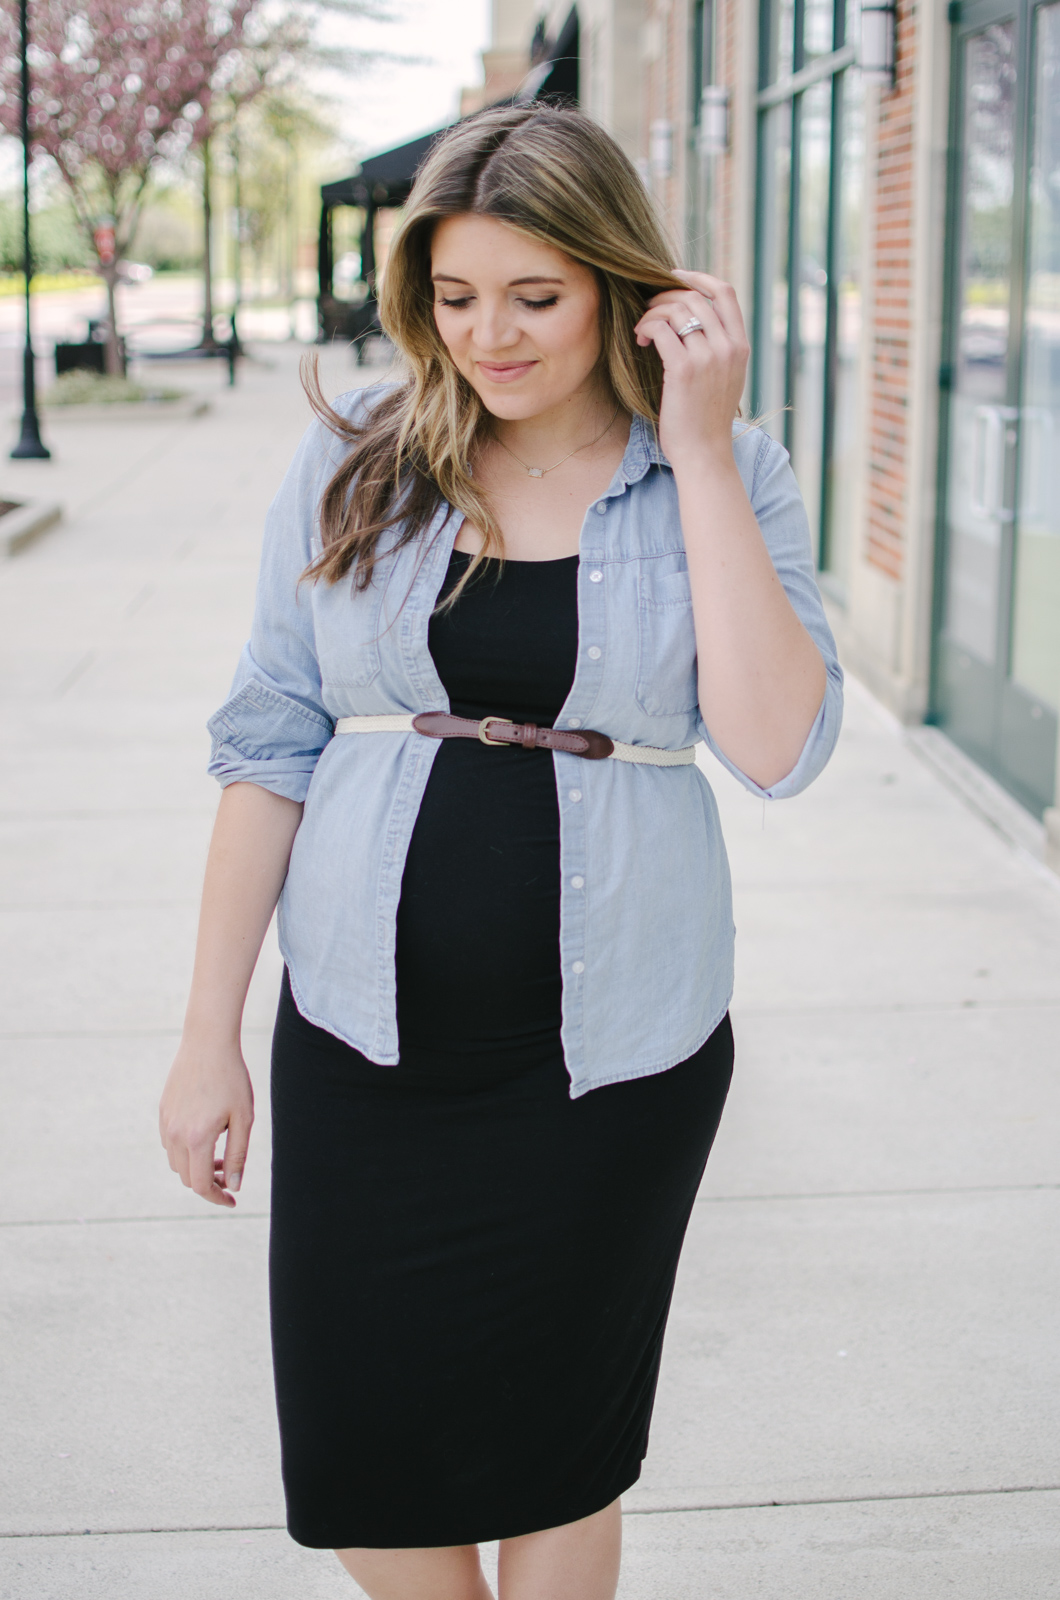 belted top maternity outfit | Sharing three ways to wear a chambray top during pregnancy. Click through for all three looks! bylaurenm.com!